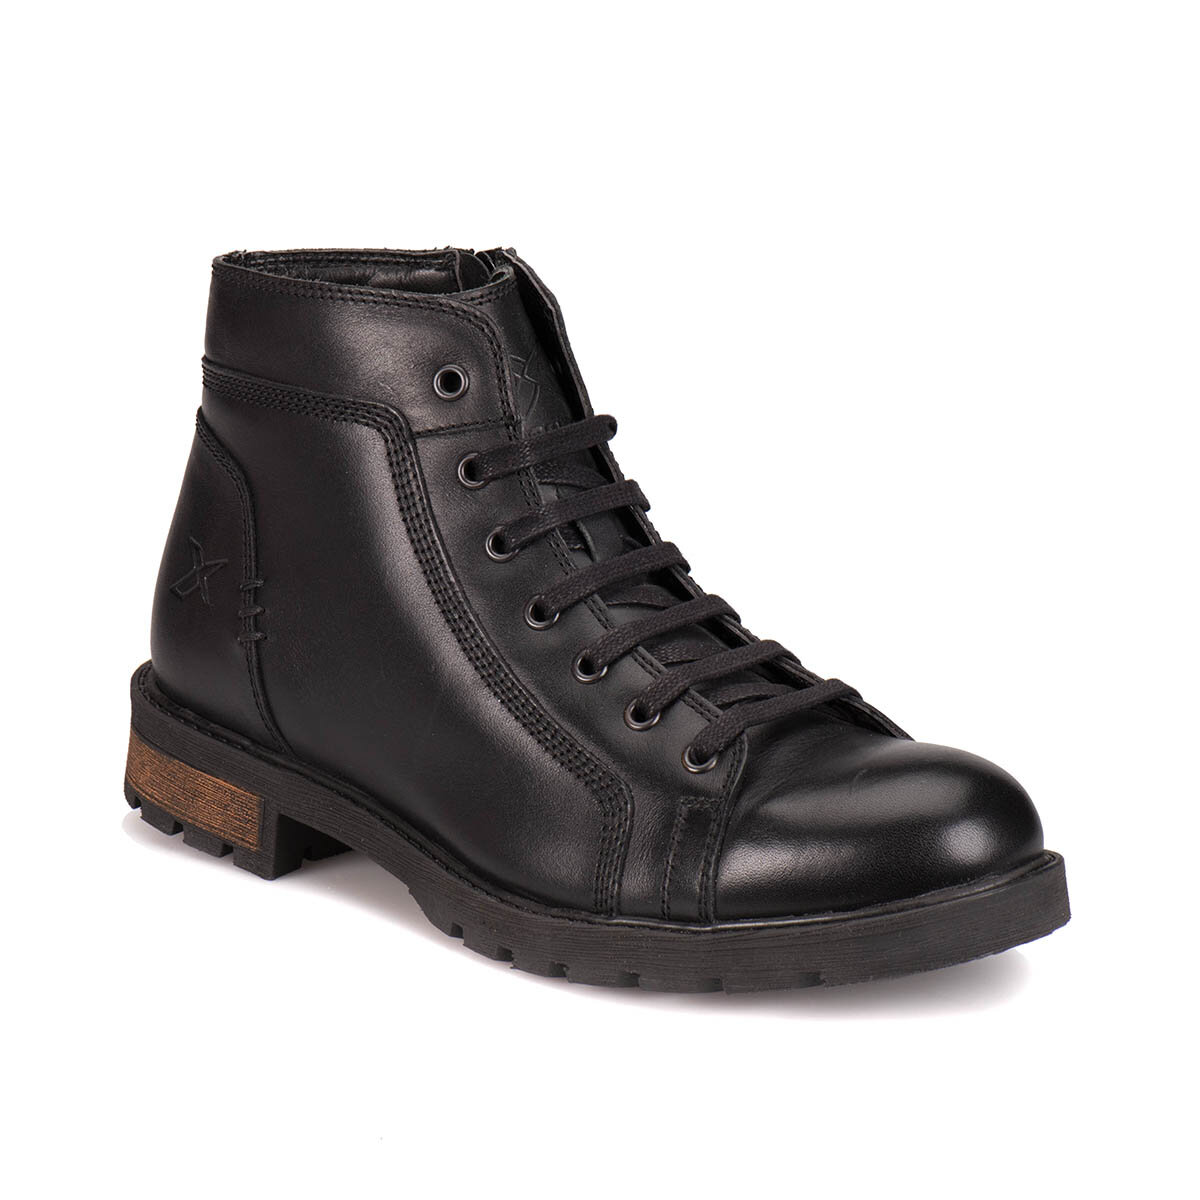 FLO A1305484 Black Men Boots KINETIX